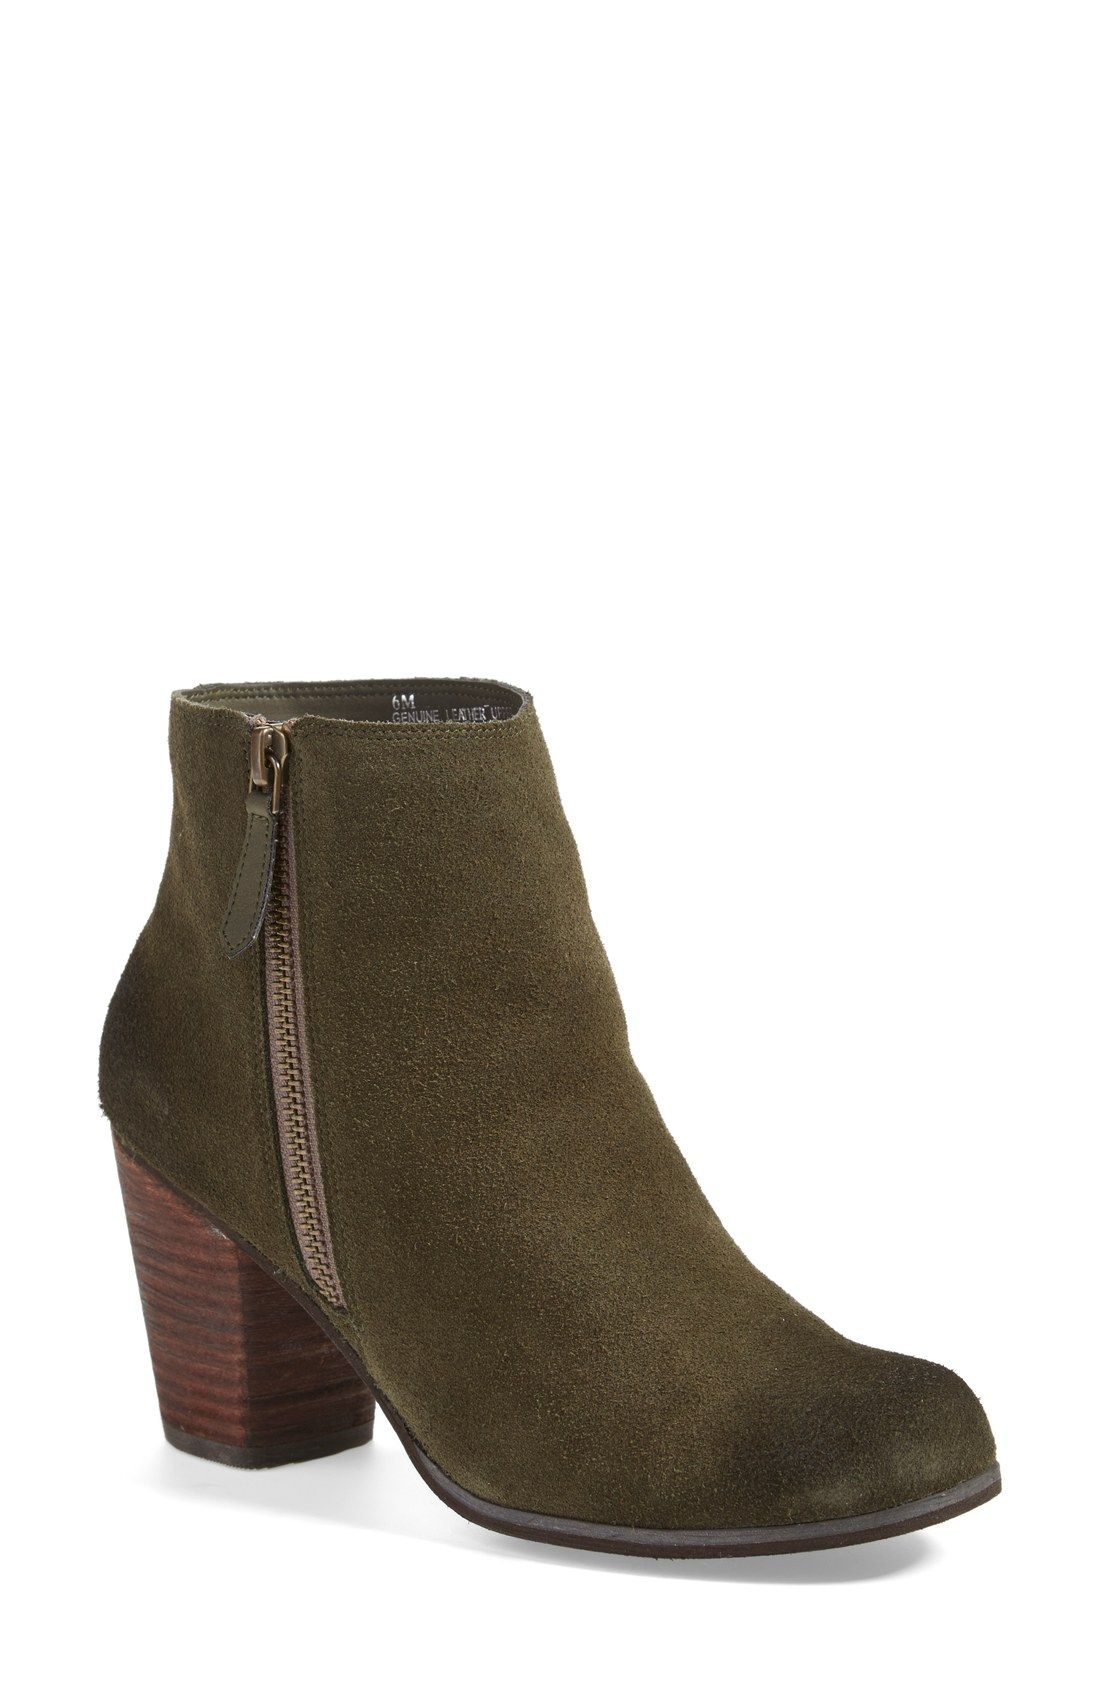 Can't resist this suede bootie!